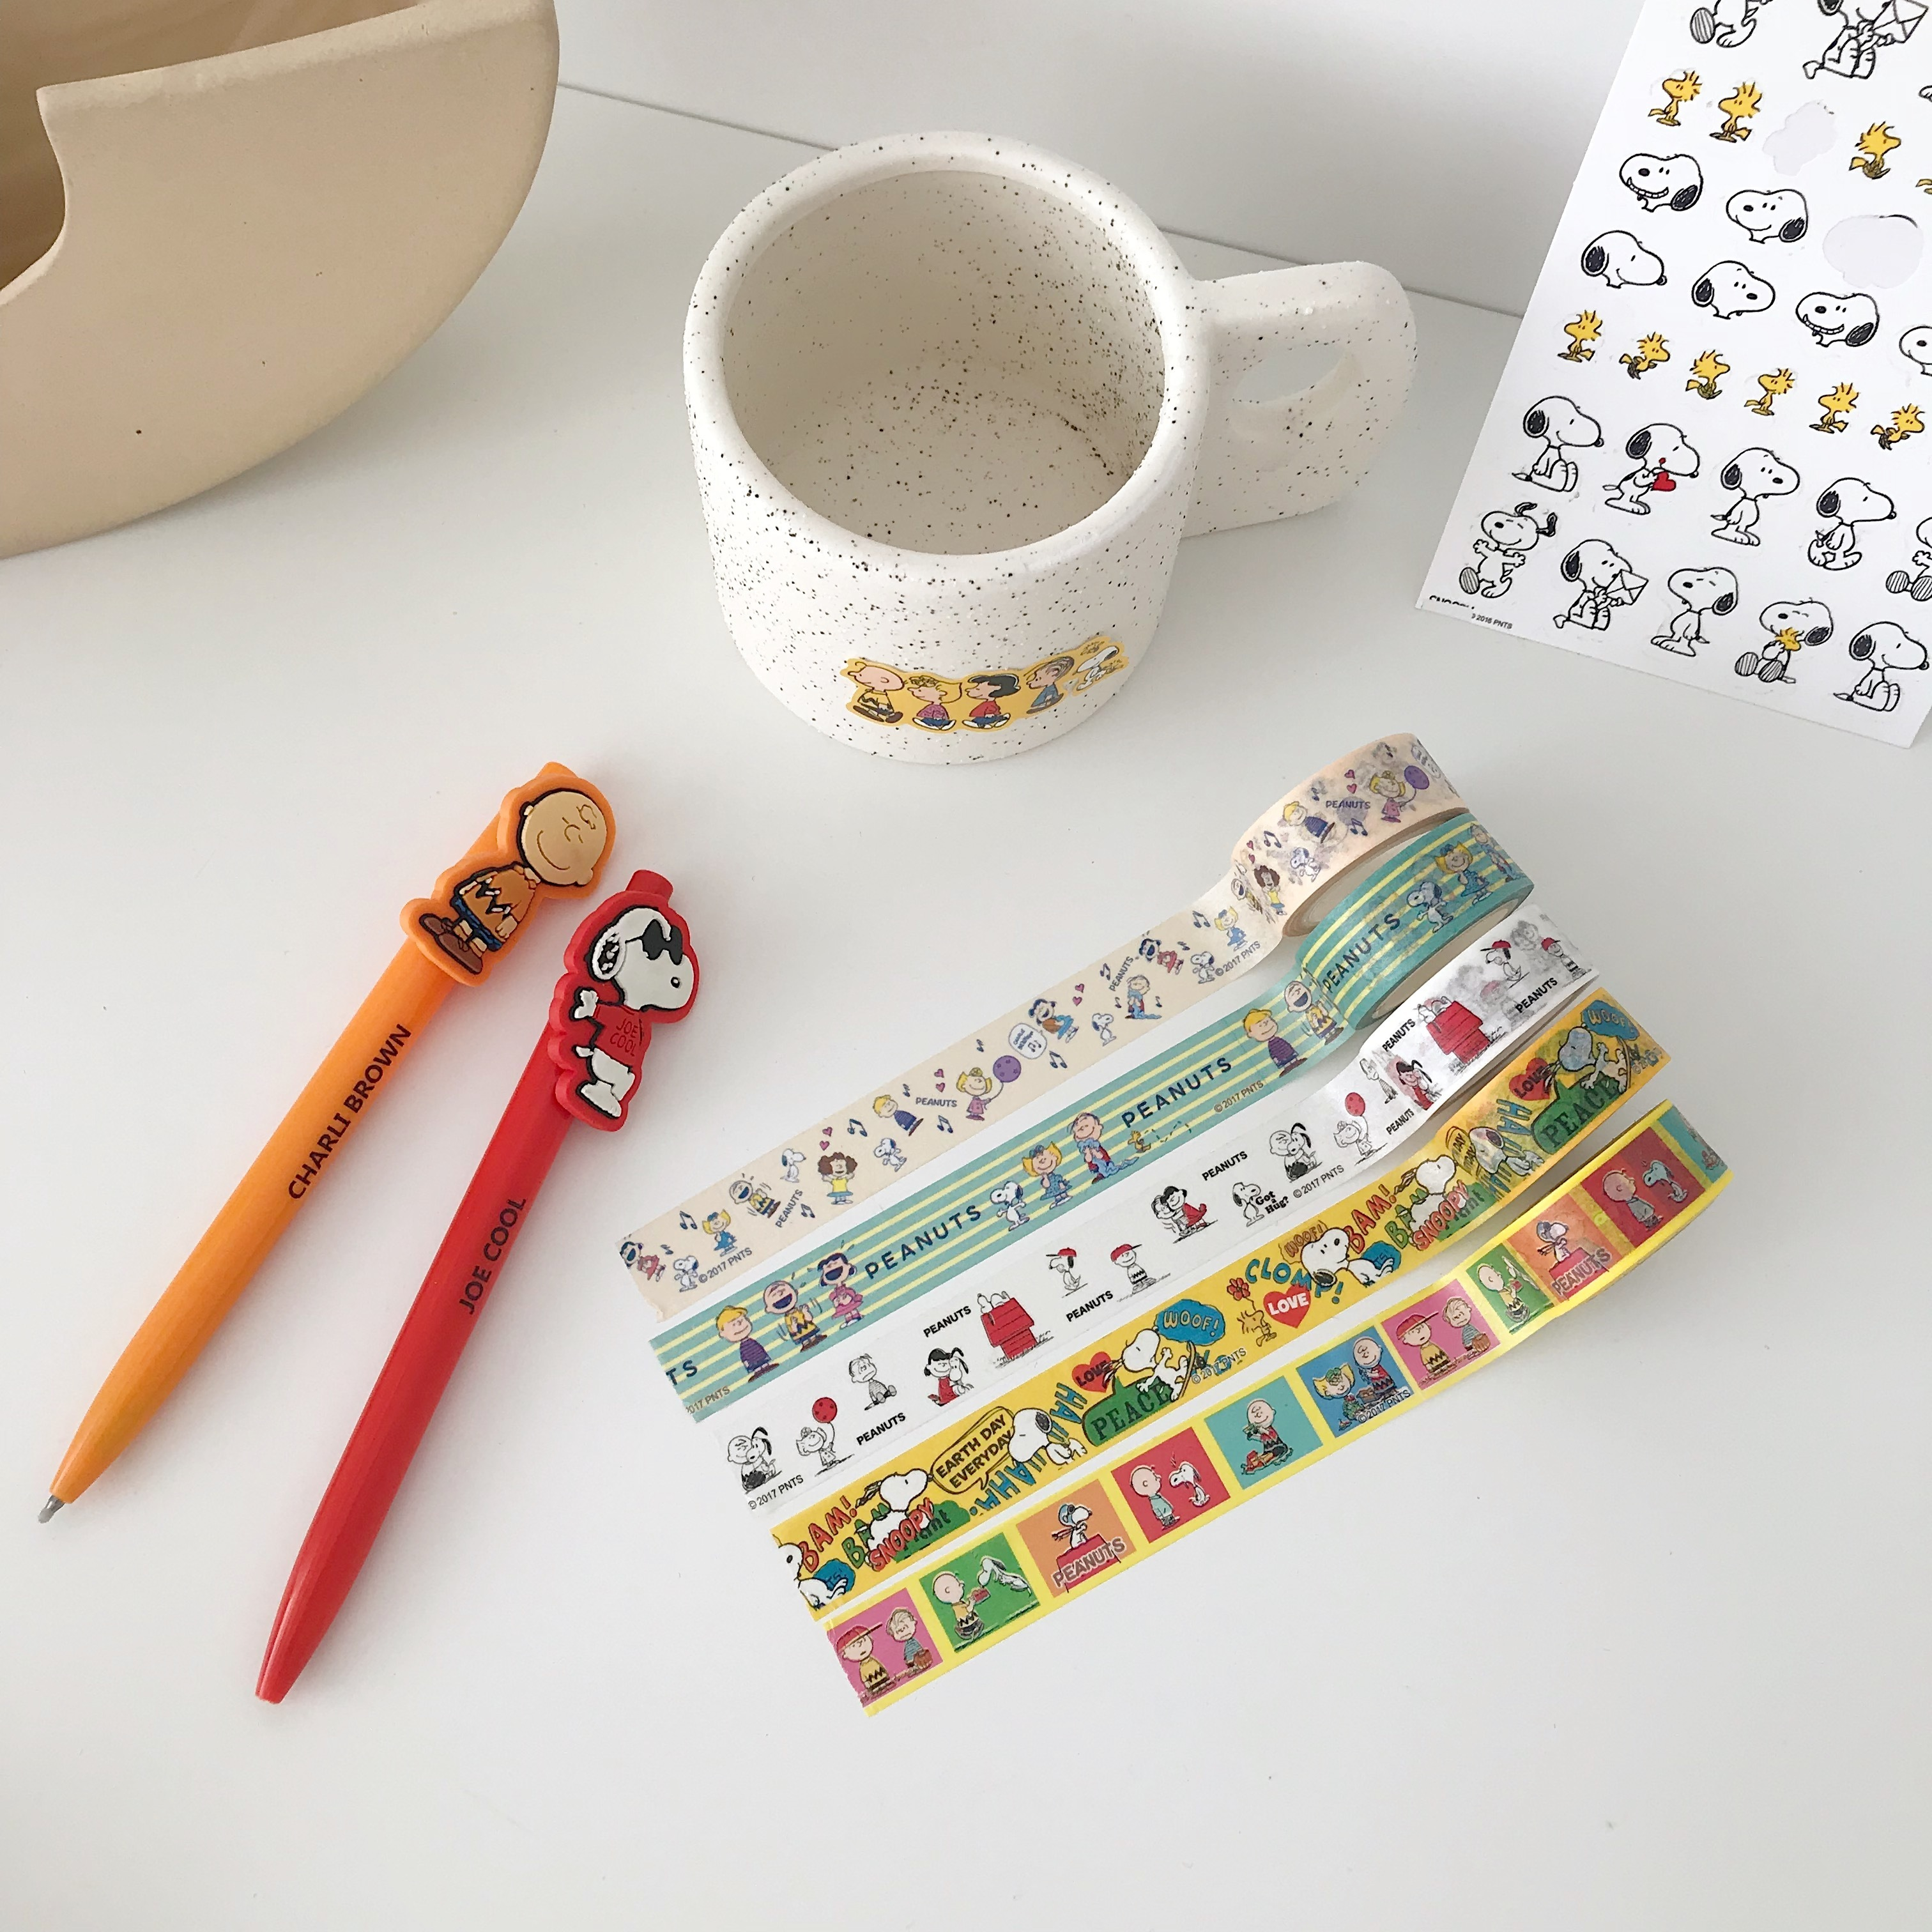 Kawaii Cartoon Characters Charlie Washi Tape Rogue Dog Snoopys Handbook Decorative Tapes Stationery Office & School Supplies